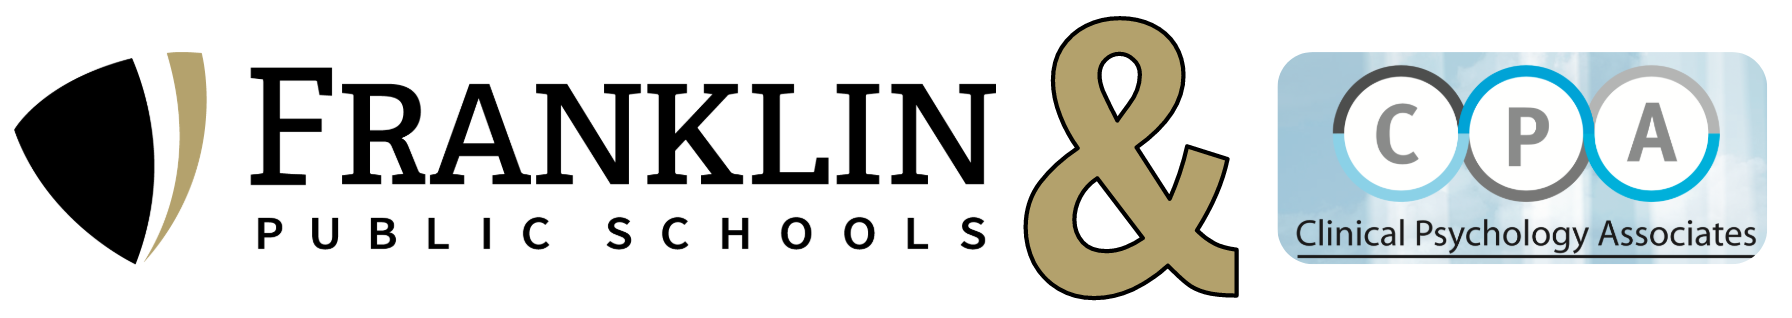 Franklin & CPA logo header